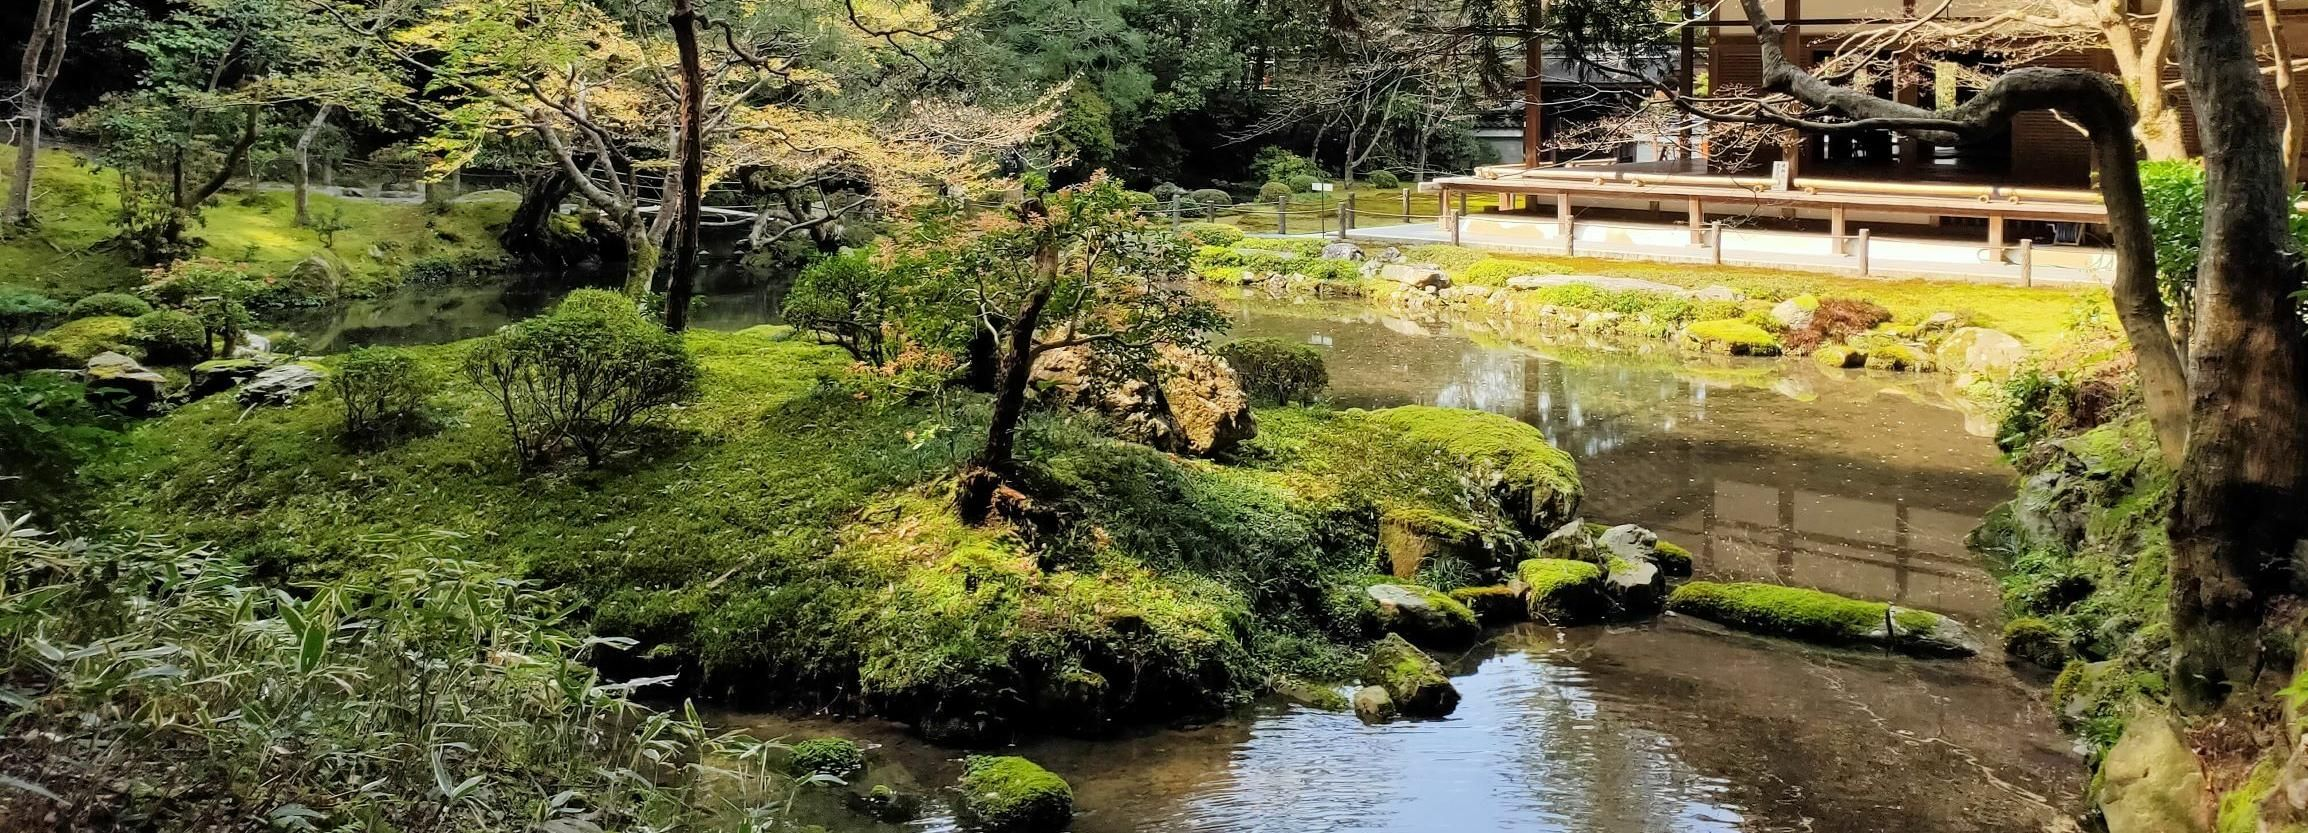 Kyoto: Ginkaku-ji, Philopher's Path and Nanzen-ji Tour